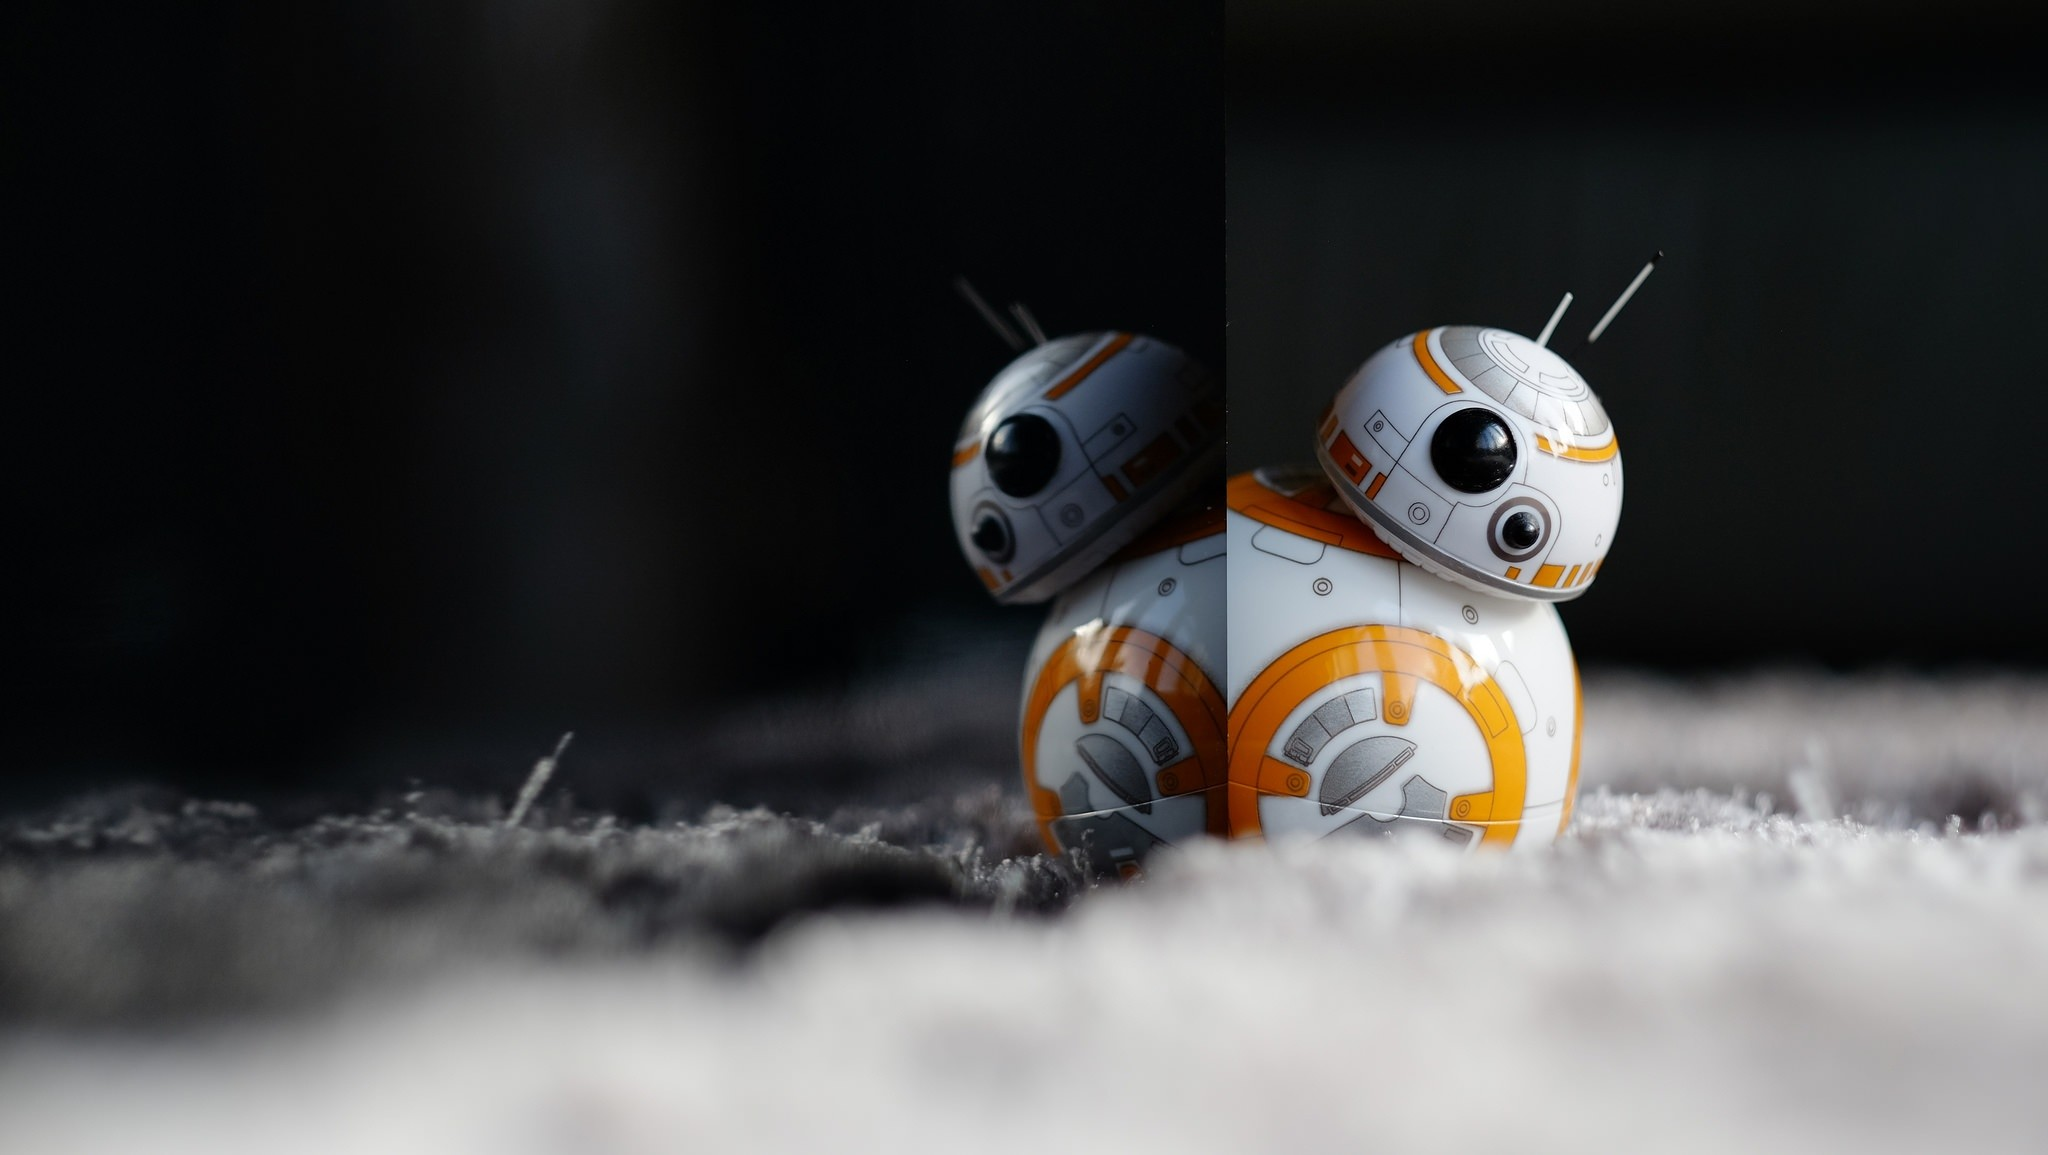 Man Made – Toy Reflection Star Wars BB-8 Droid Wallpaper